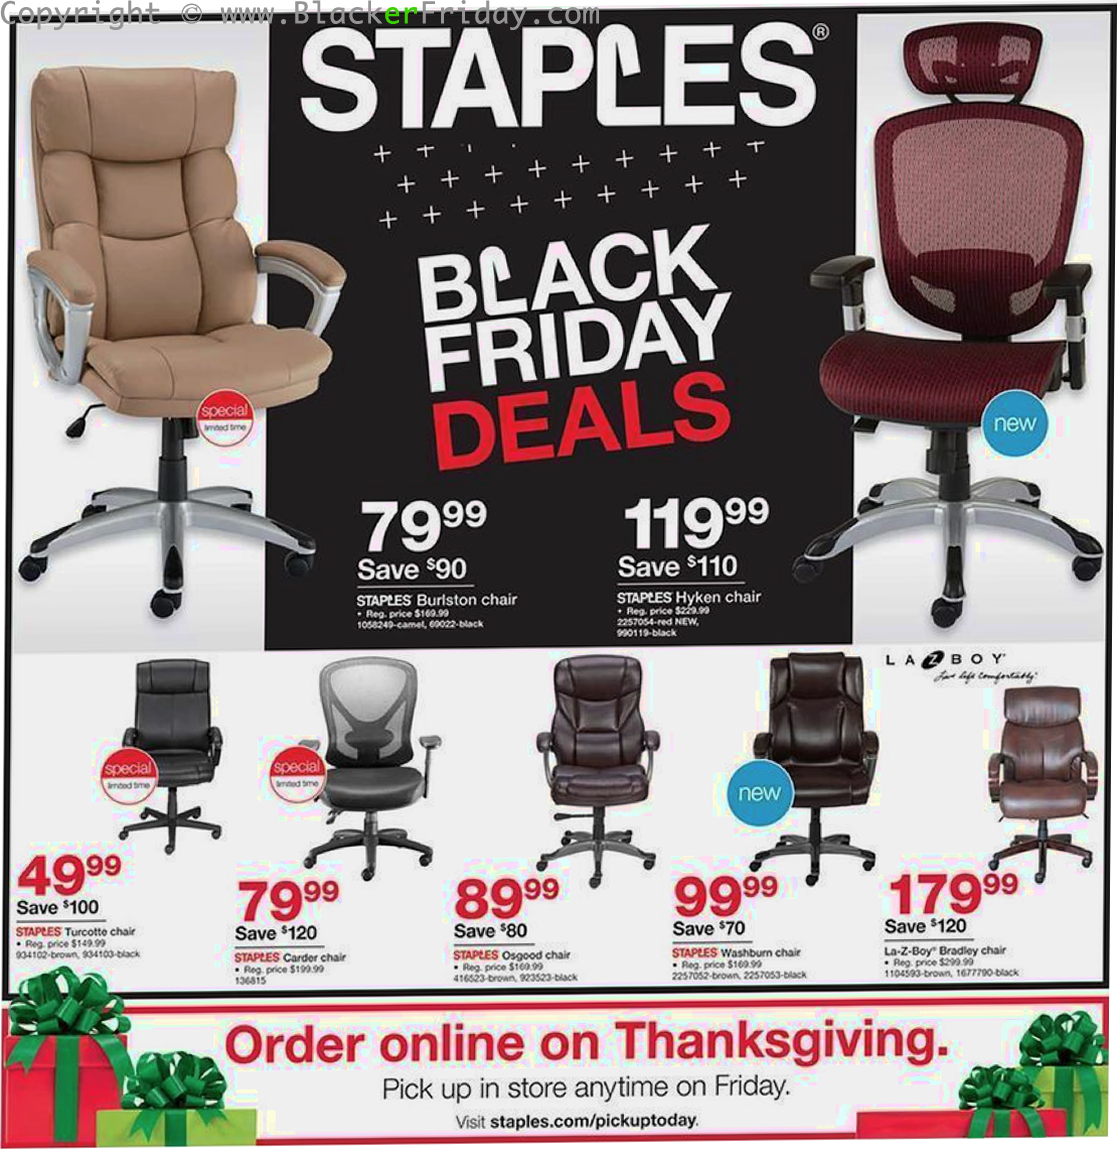 Staples Black Friday 39 Sale - What to Expect - Blacker Friday